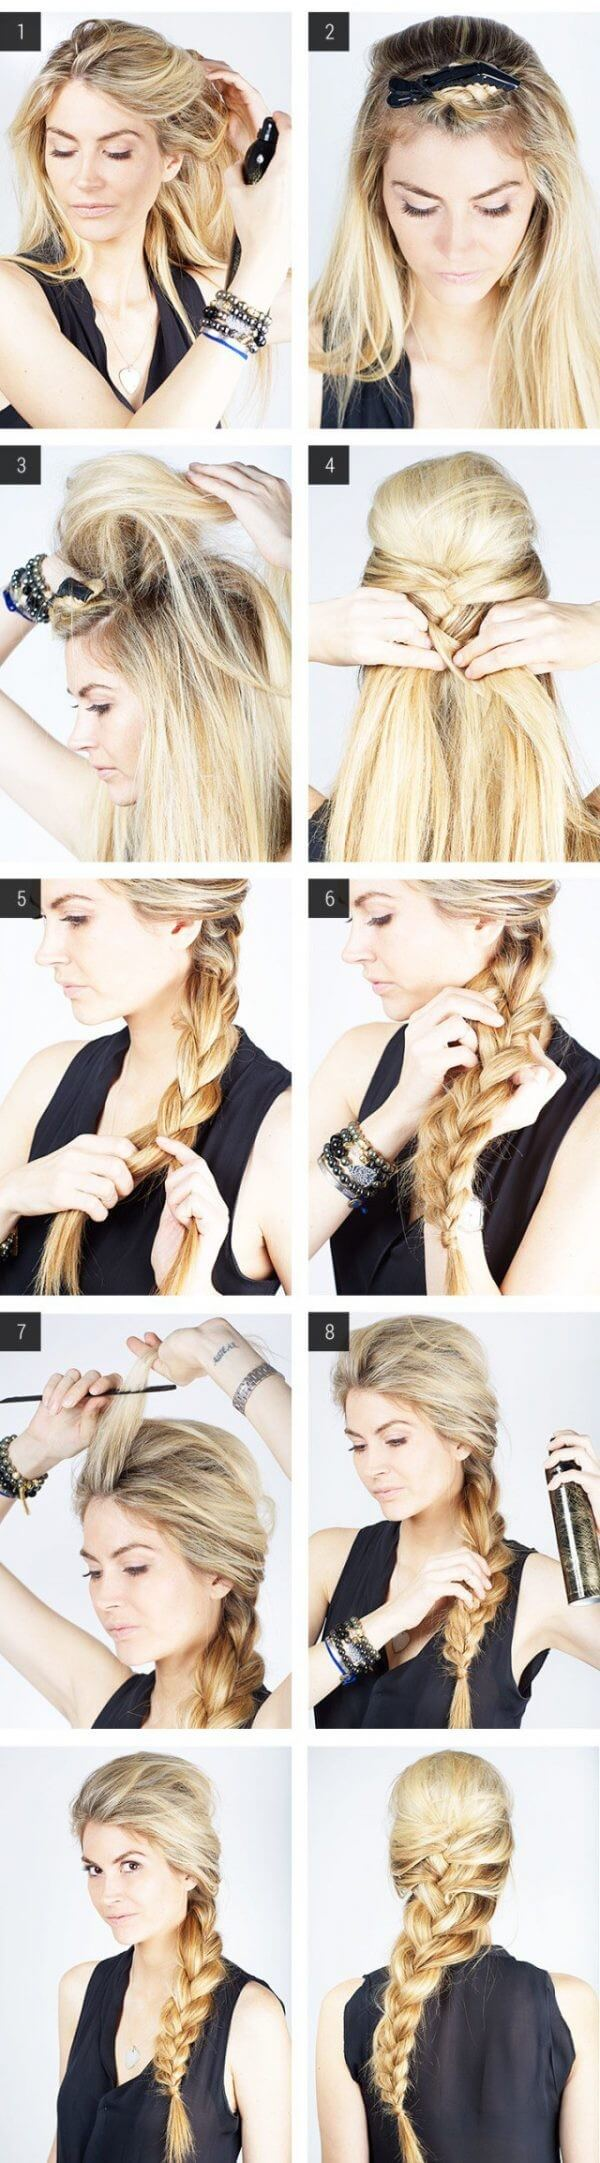 Weave The Braids Step by Step Tutorial